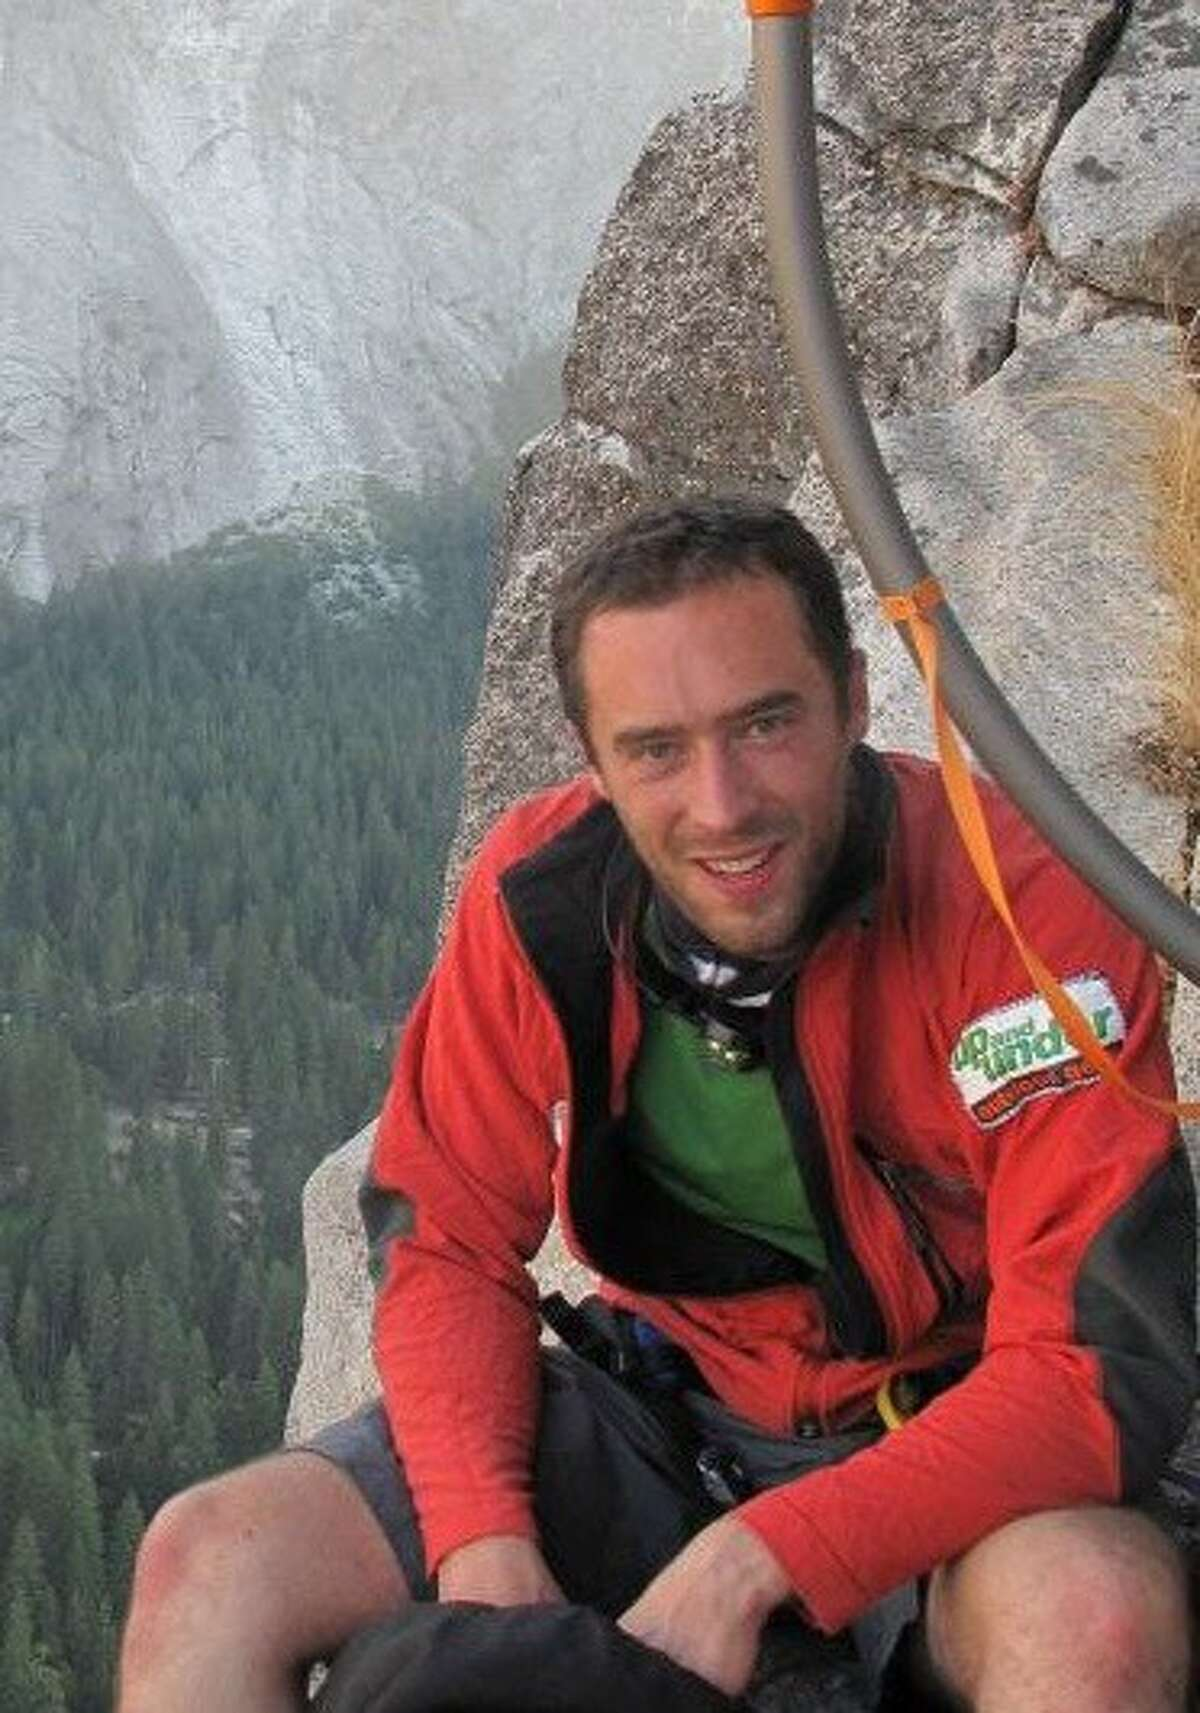 Andrew Foster, 32, died protecting his wife from rockfall in Yosemite National Park on Sept. 27, 2017.